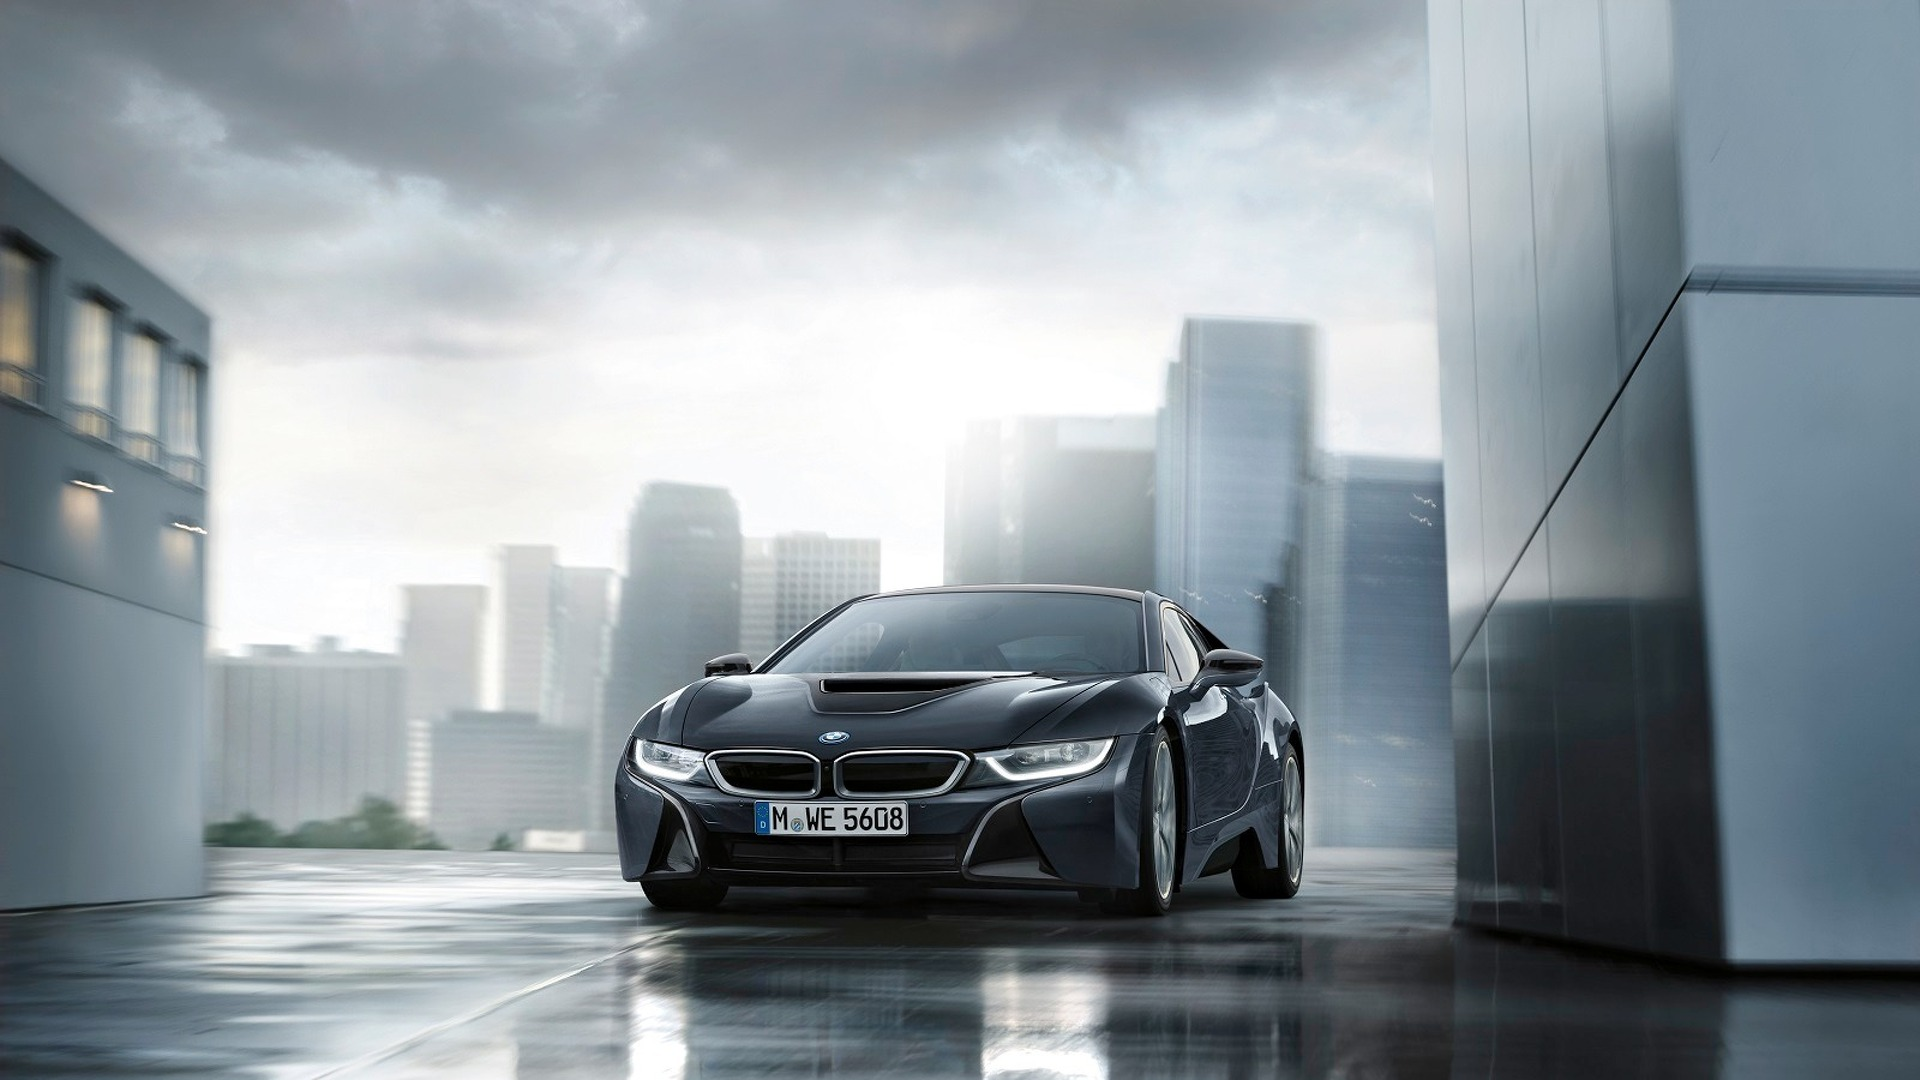 Limited Run Bmw I8 Protonic Dark Silver Edition To Debut In Paris